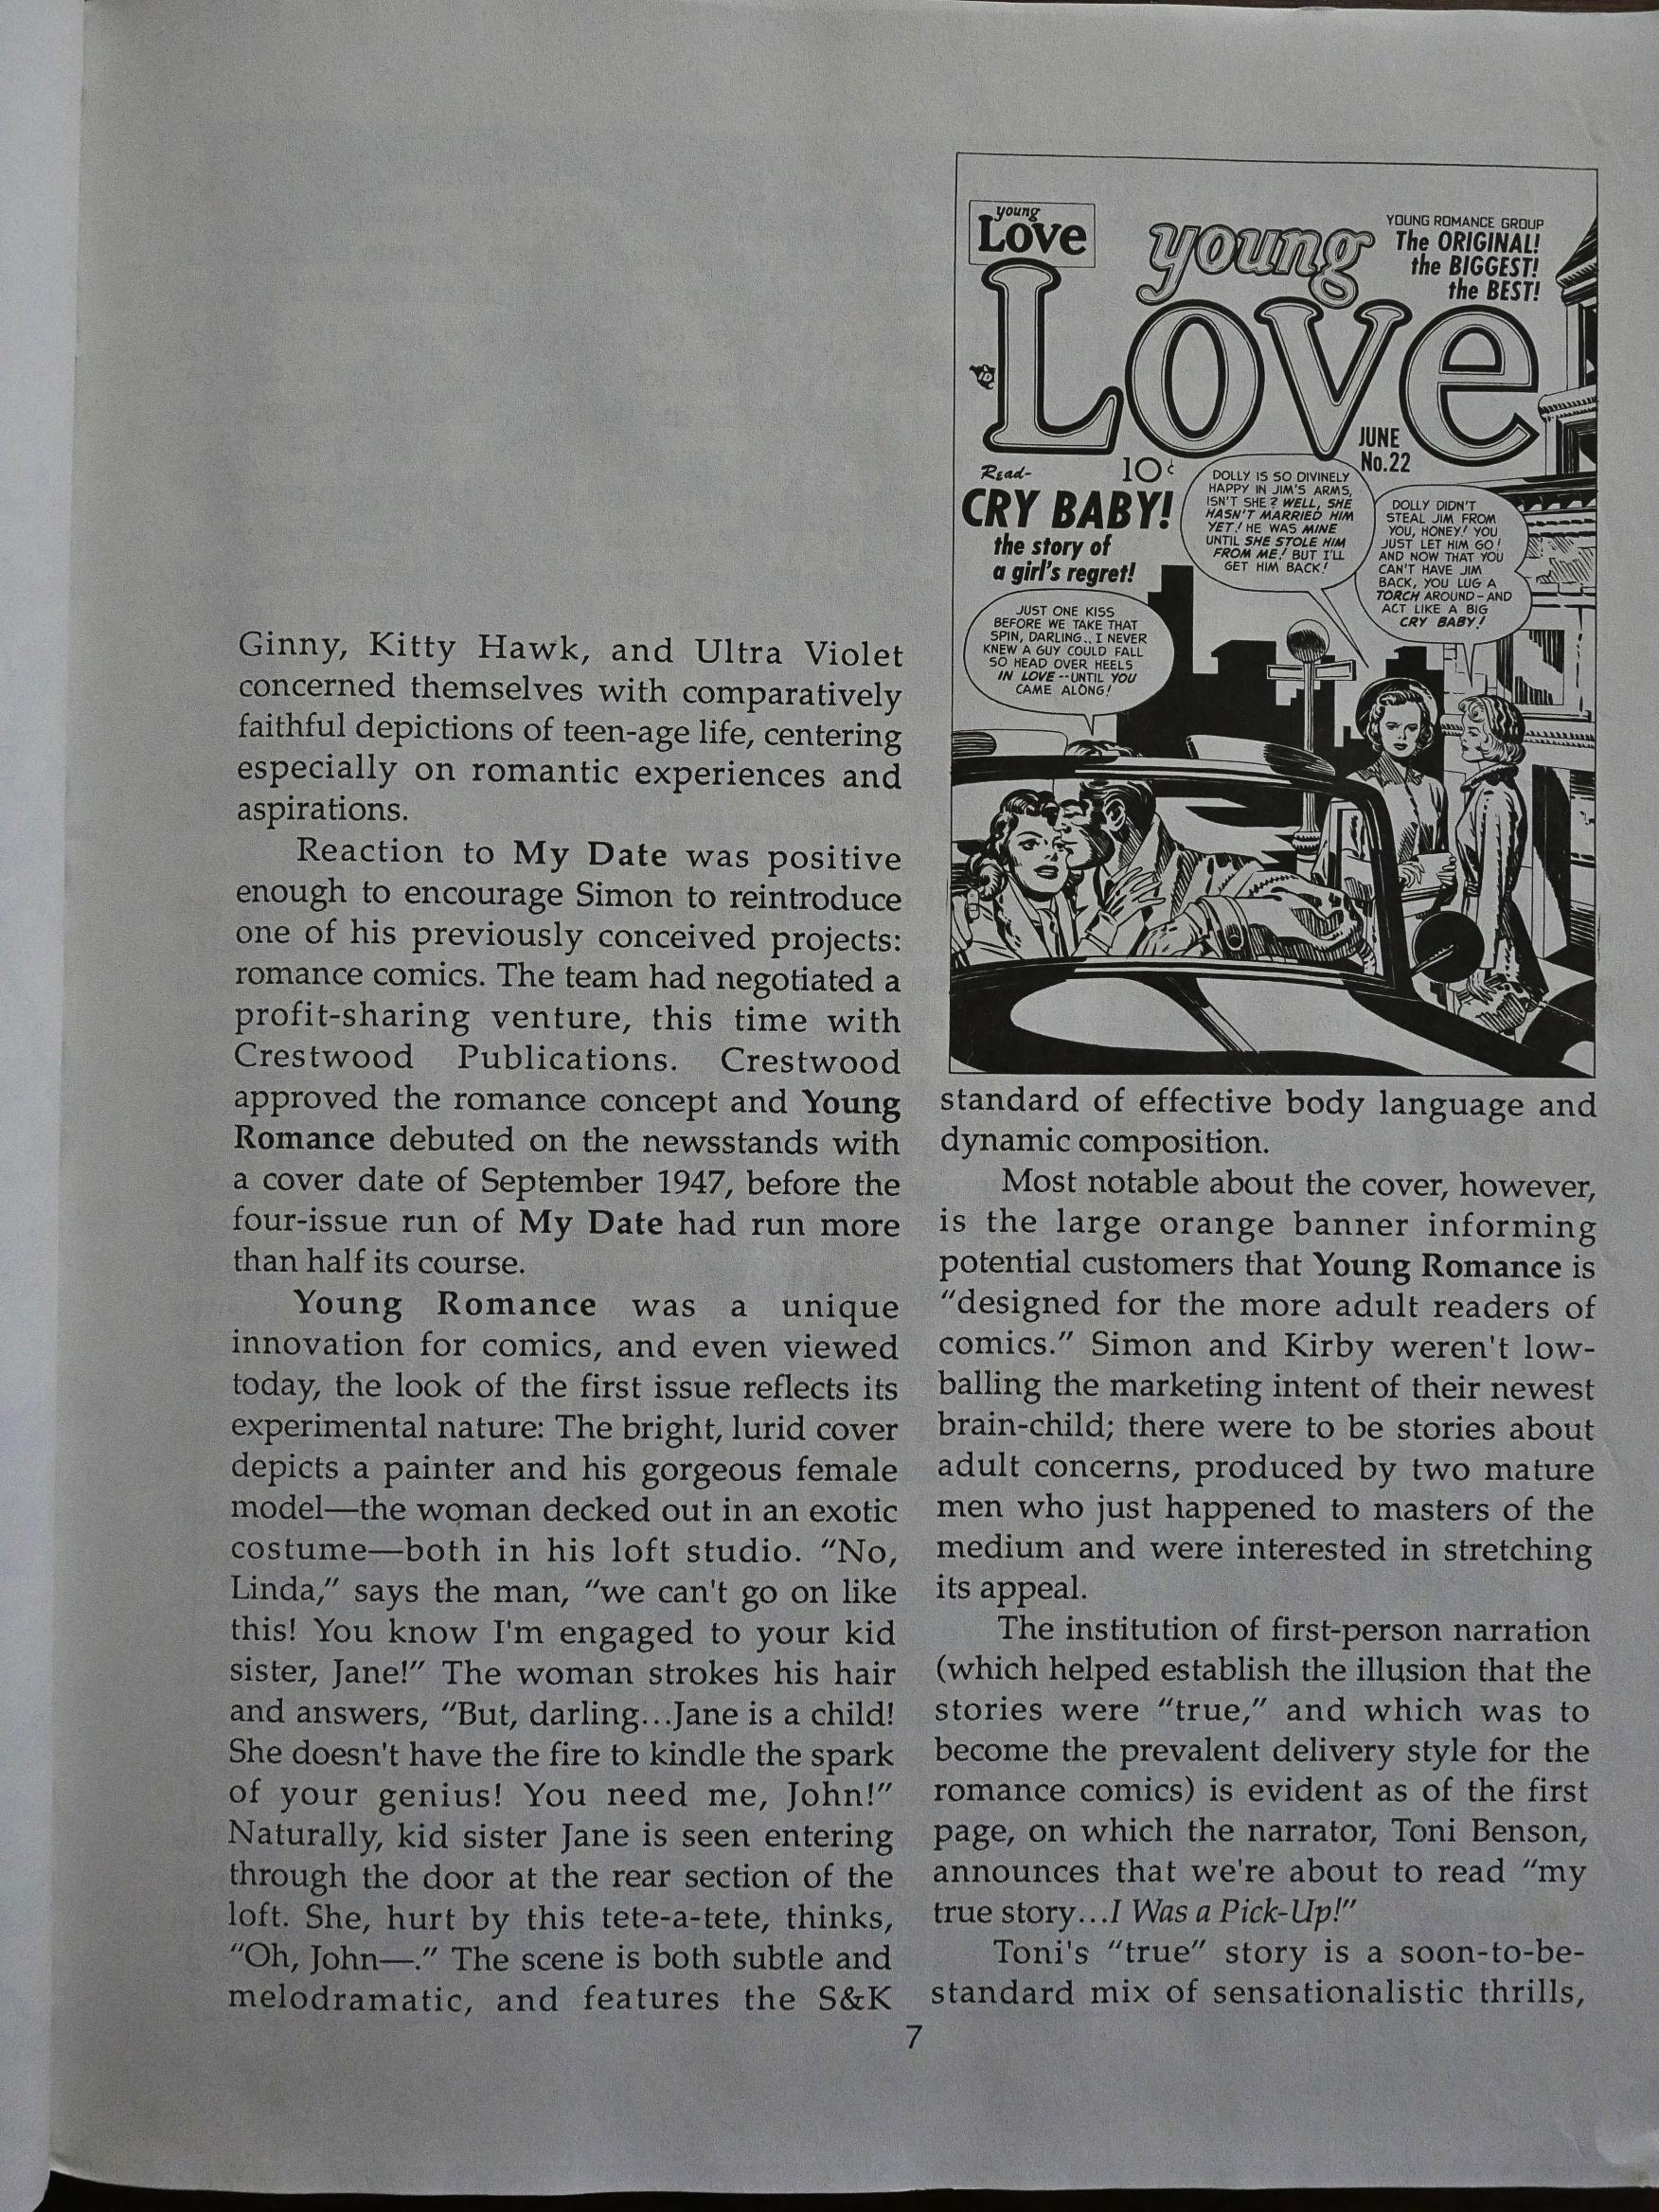 1988: Real Love: The Best of Simon and Kirby Romance Comics